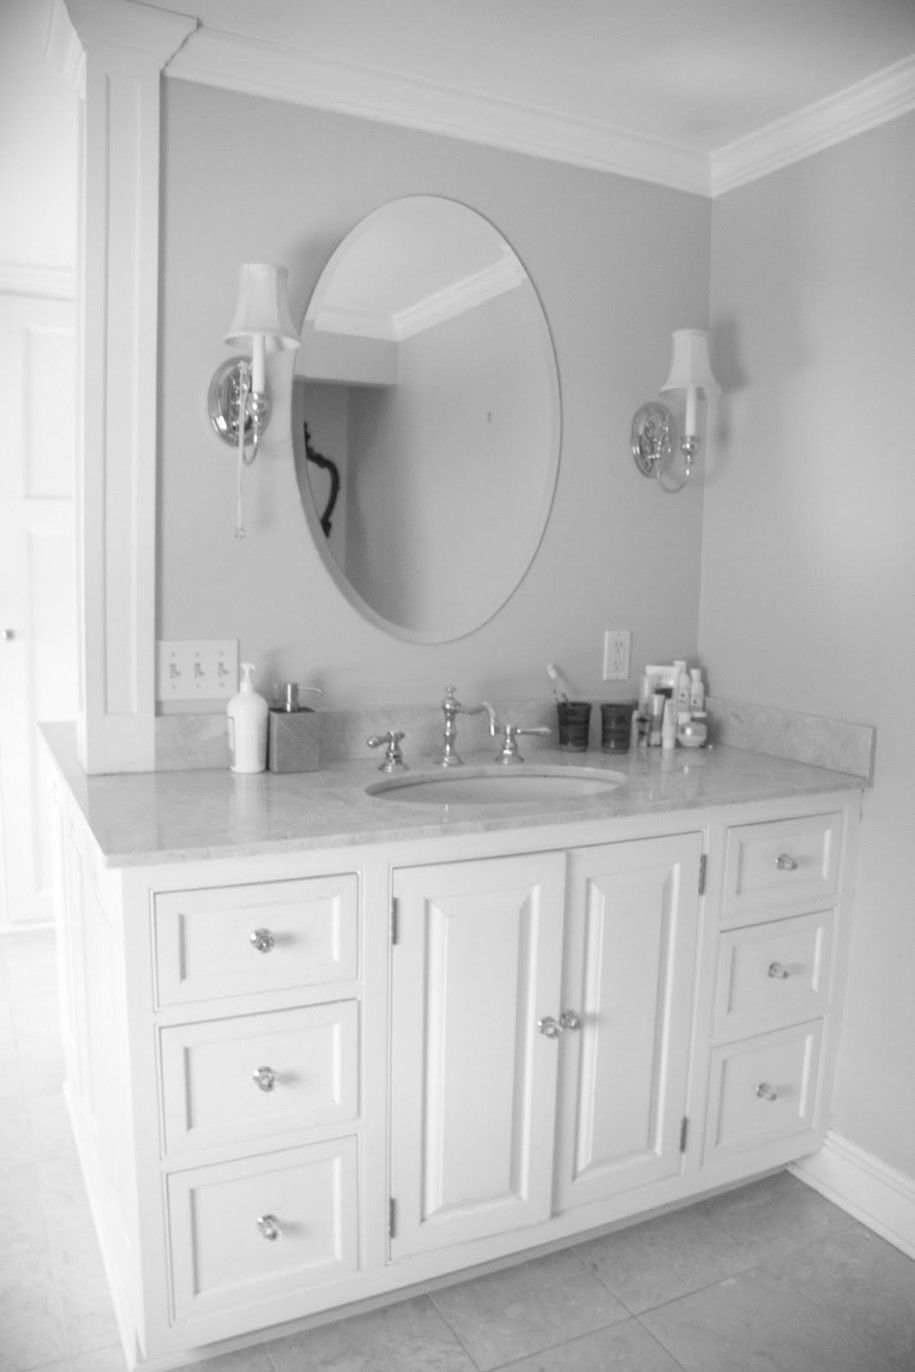 Precious Bathroom Vanities Lowes Crafted of Wood in High Gloss ...